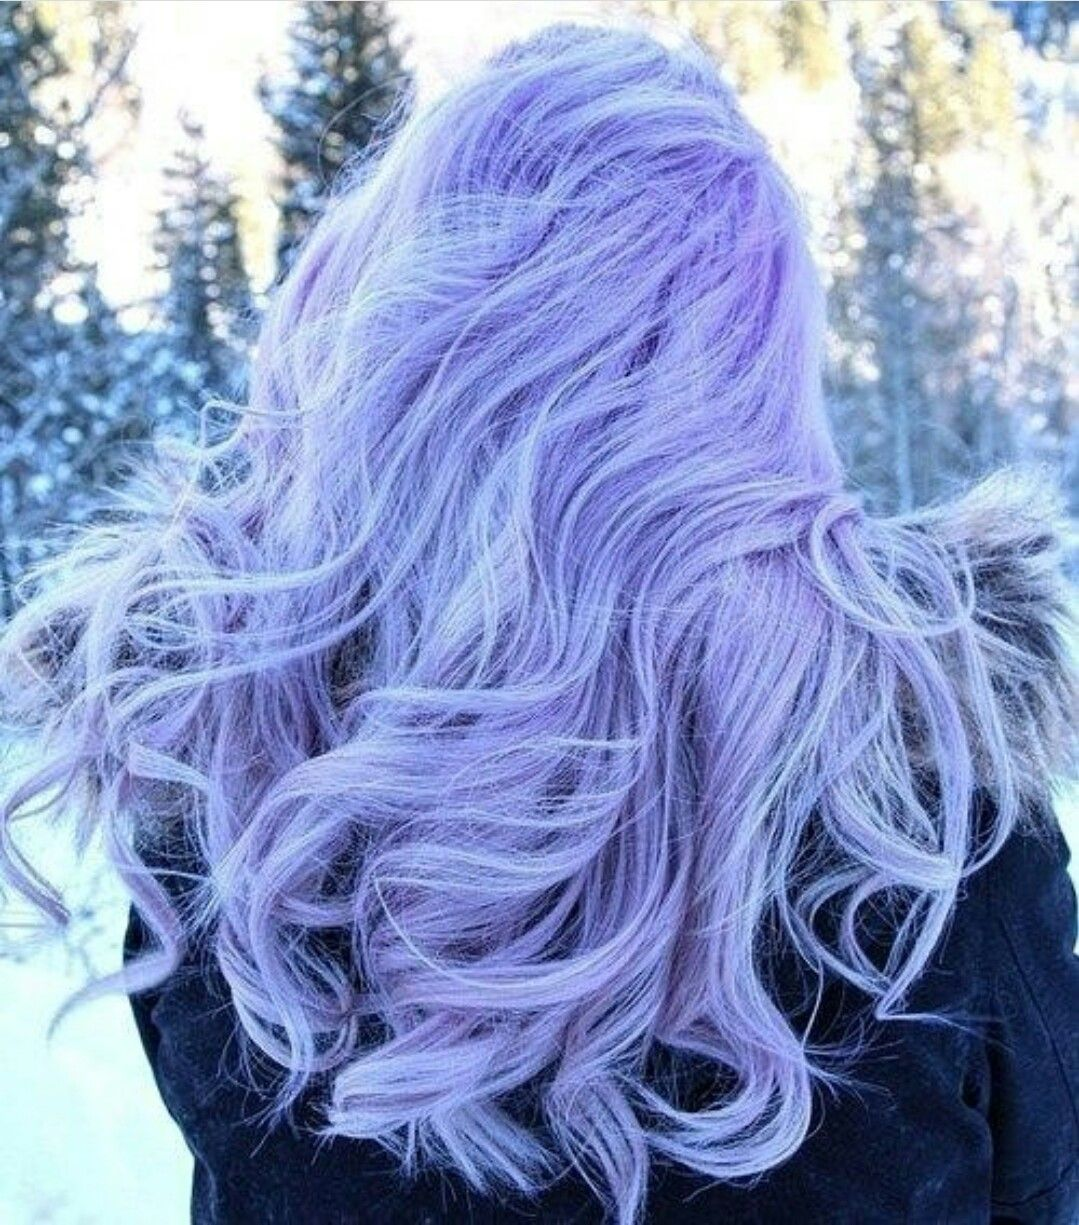 Now letus dread it hair fashion pinterest dreads and hair coloring